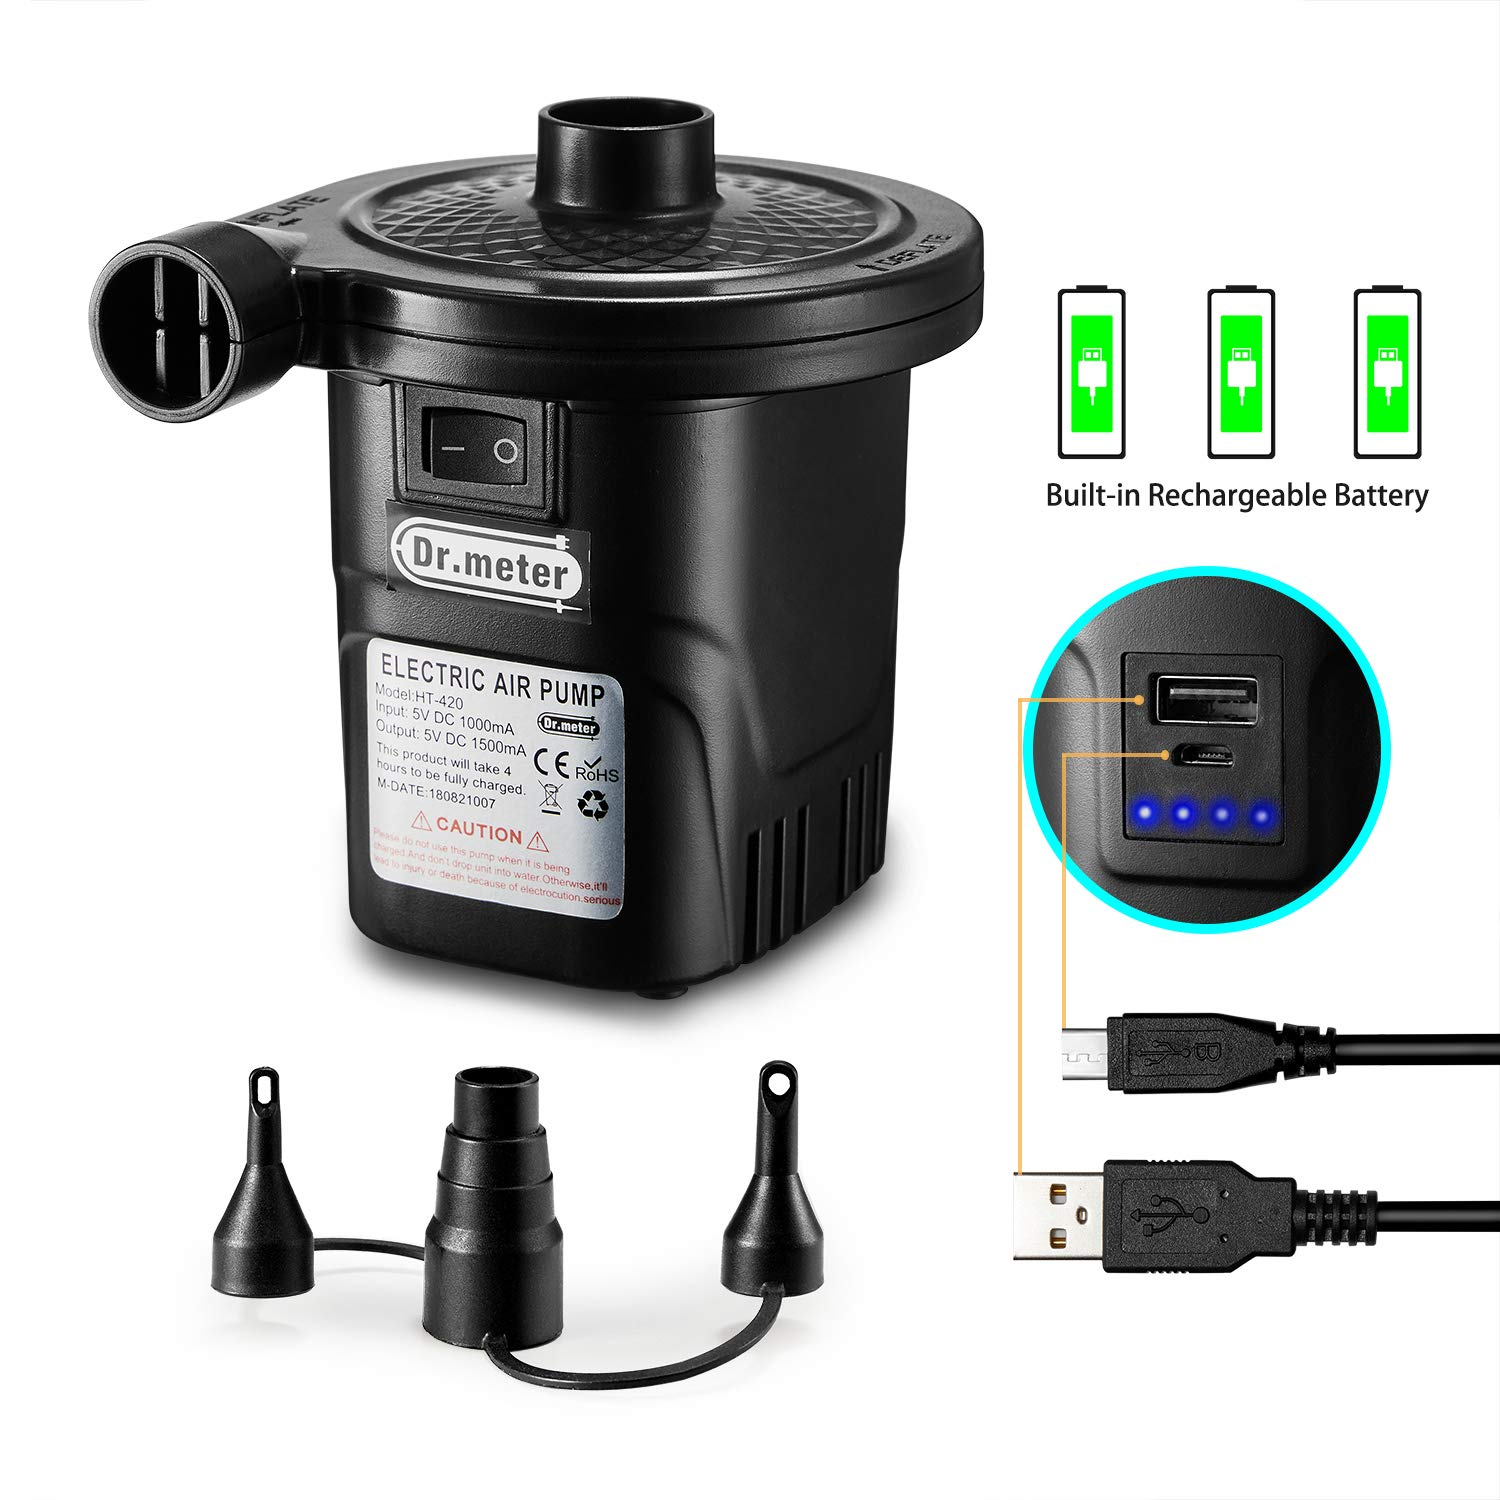 Rechargeable Air Pump, Dr.meter HT-420 Portable Electric Air Pump Quick-Fill Inflator Deflator Air Mattress Pump with Charging Function/ 3 Nozzles for Inflatables Tire Raft Bed Boat Pool Toy, Black